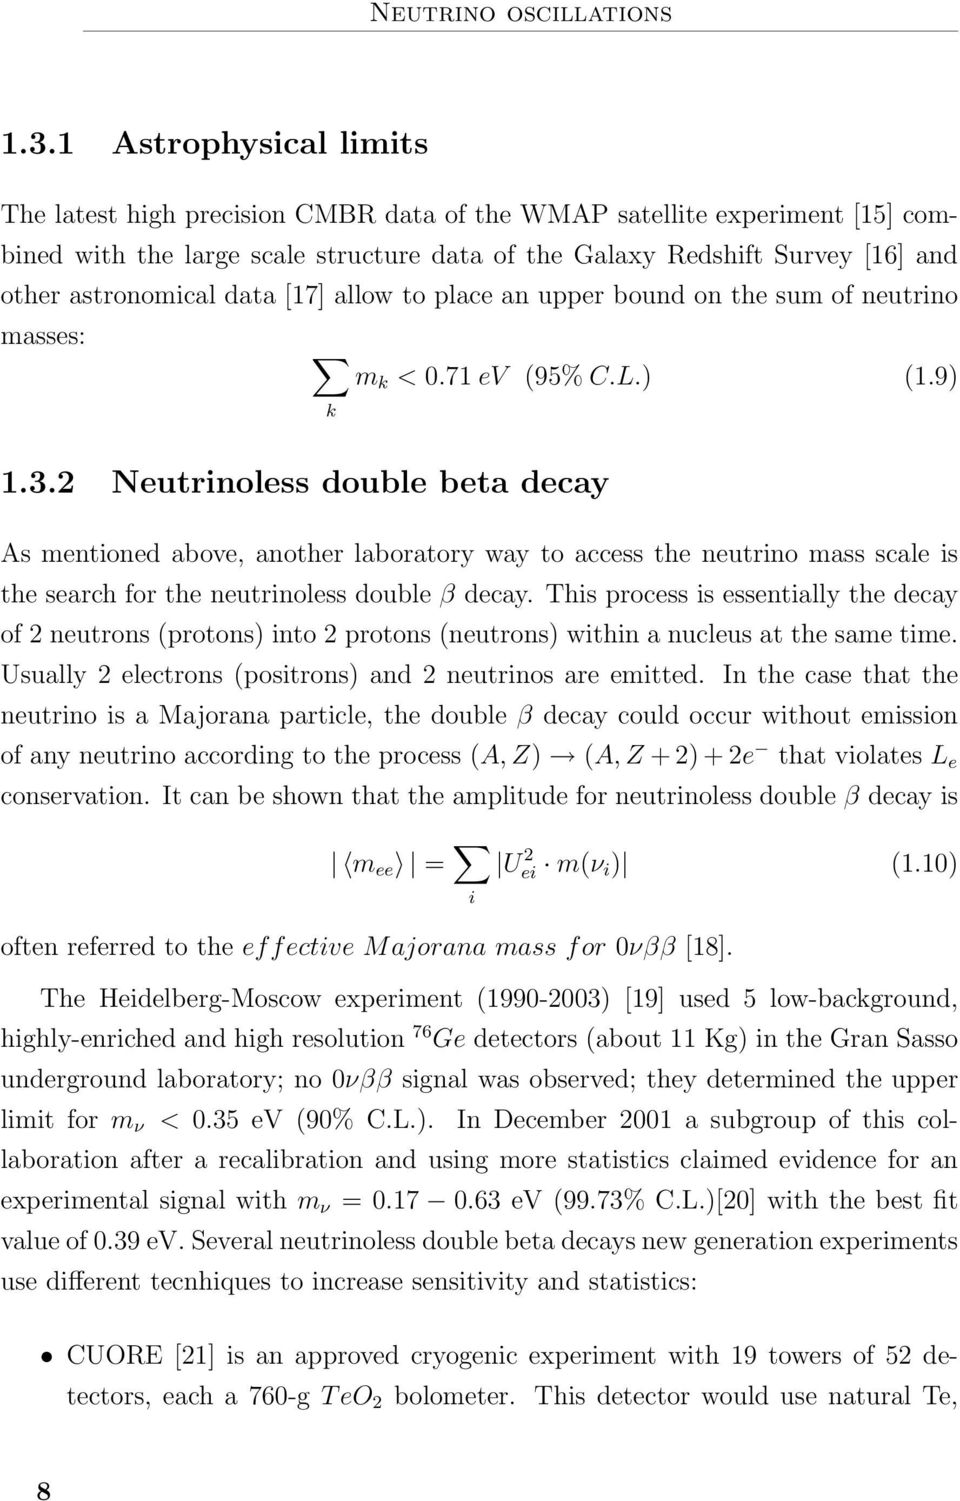 data [17] allow to place an upper bound on the sum of neutrino masses: 1.3.2 Neutrinoless double beta decay m k < 0.71 ev (95% C.L.) (1.